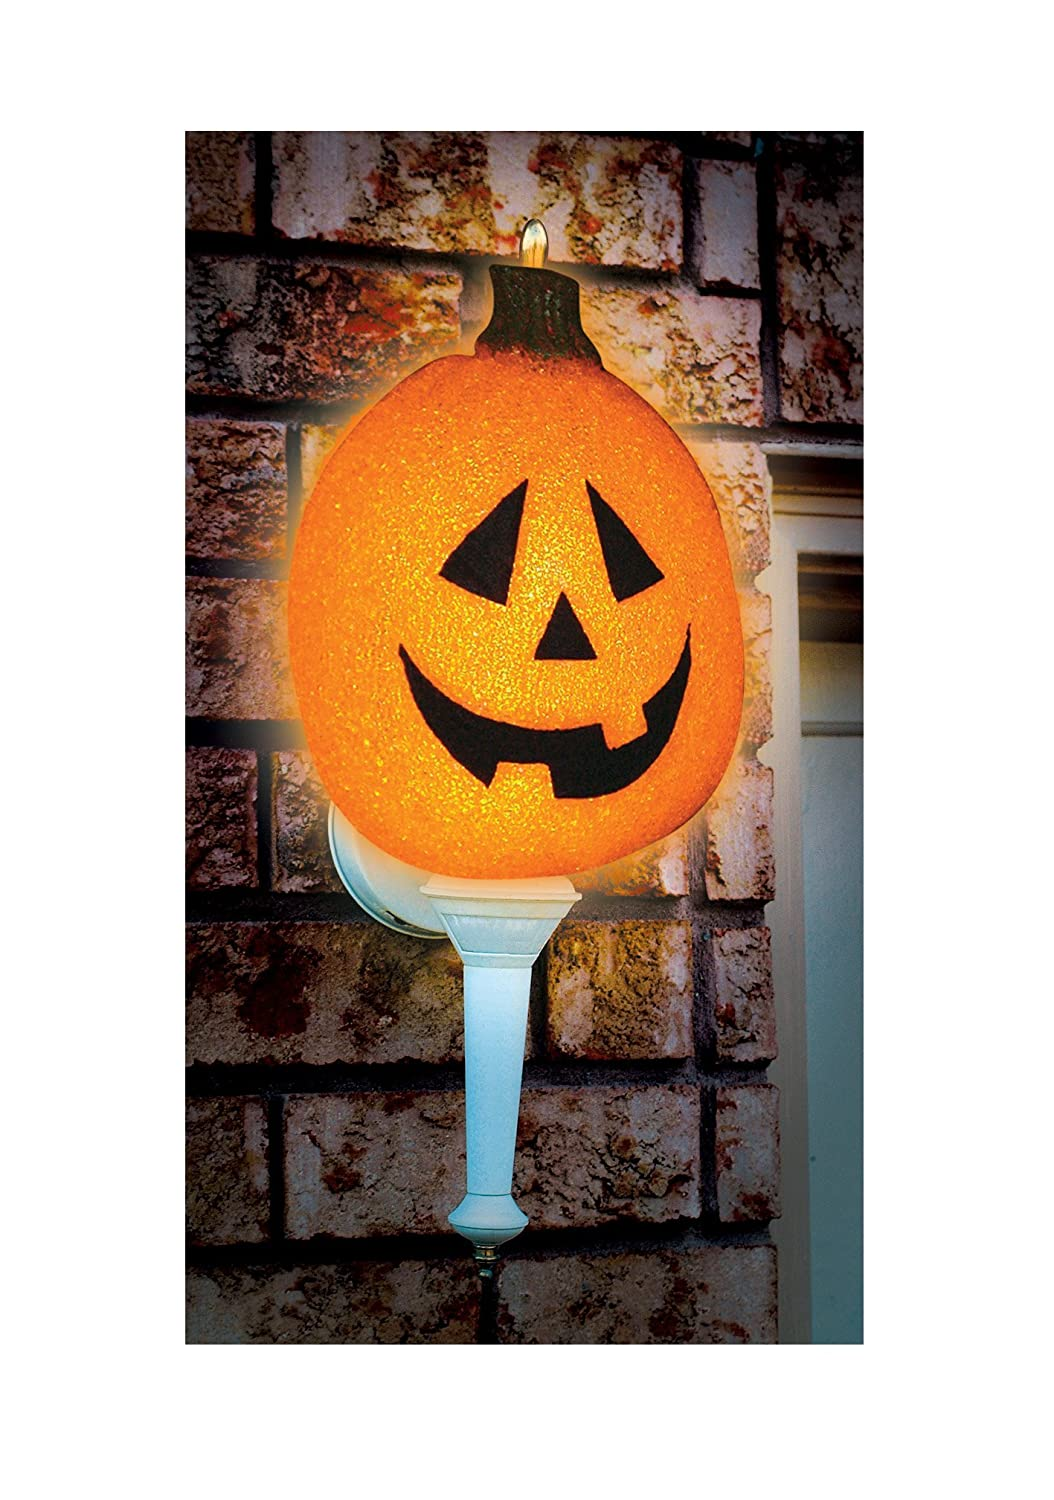 Amazon.com: Seasons Sparkling Pumpkin Porch Light Cover Novelty ...